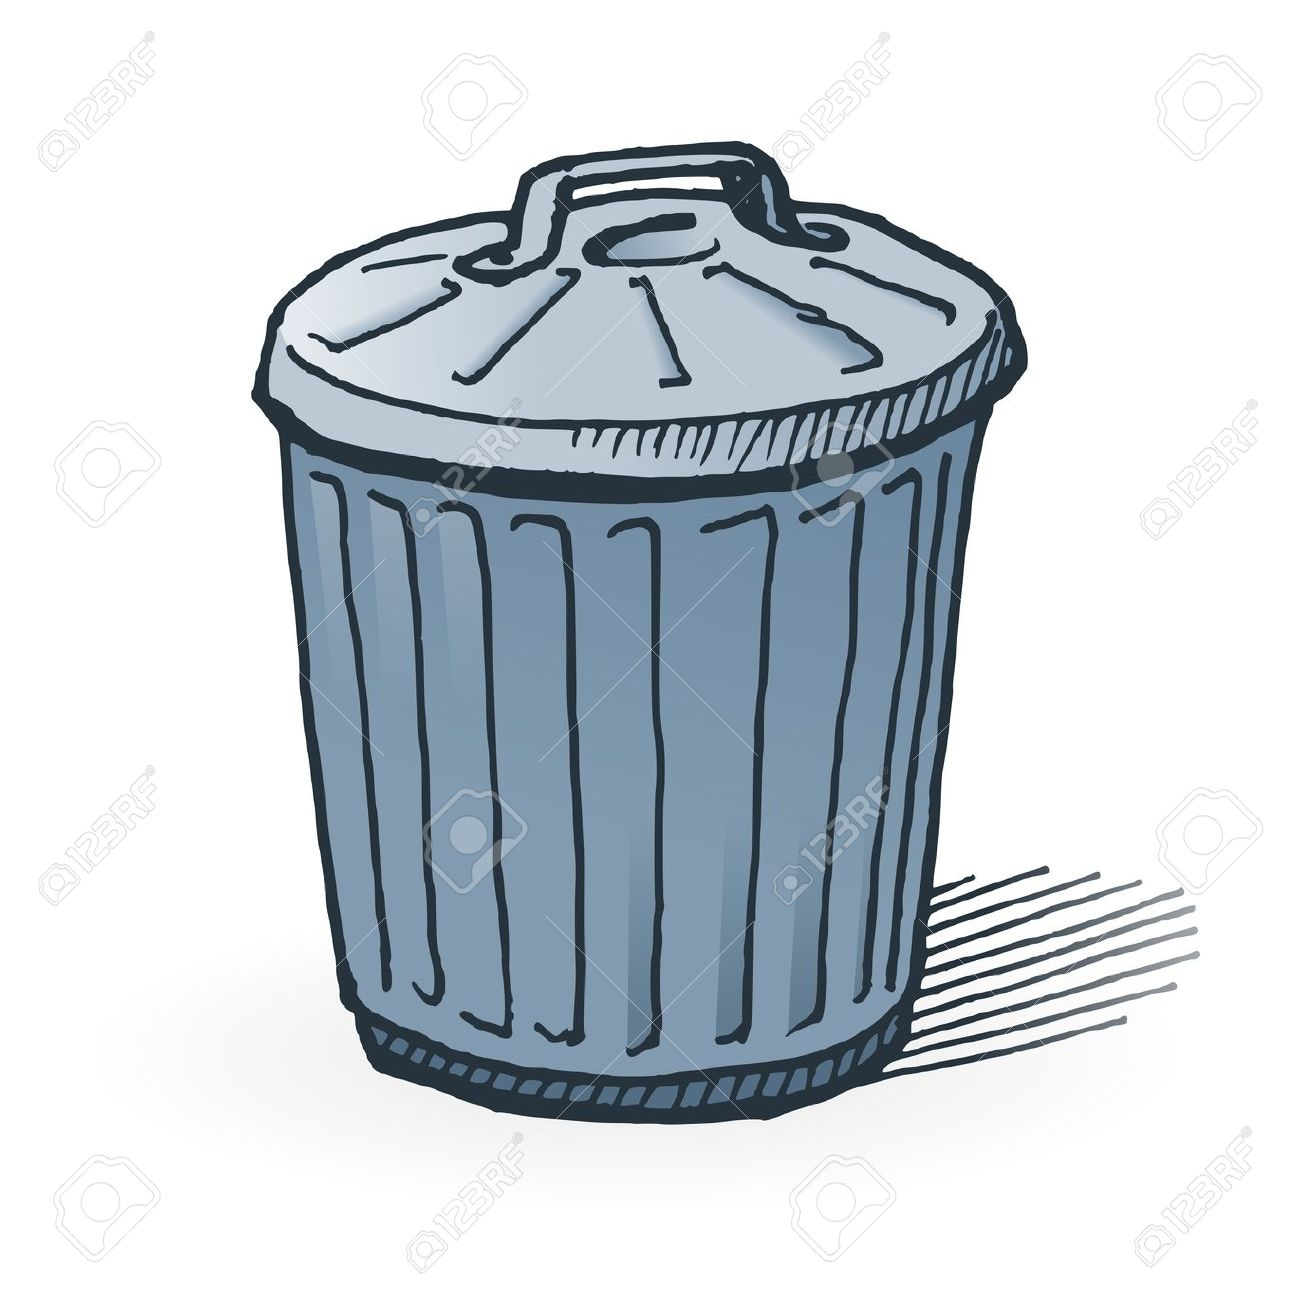 Trashcans clipart image freeuse library Trash Bin Drawing | Free download best Trash Bin Drawing on ... image freeuse library